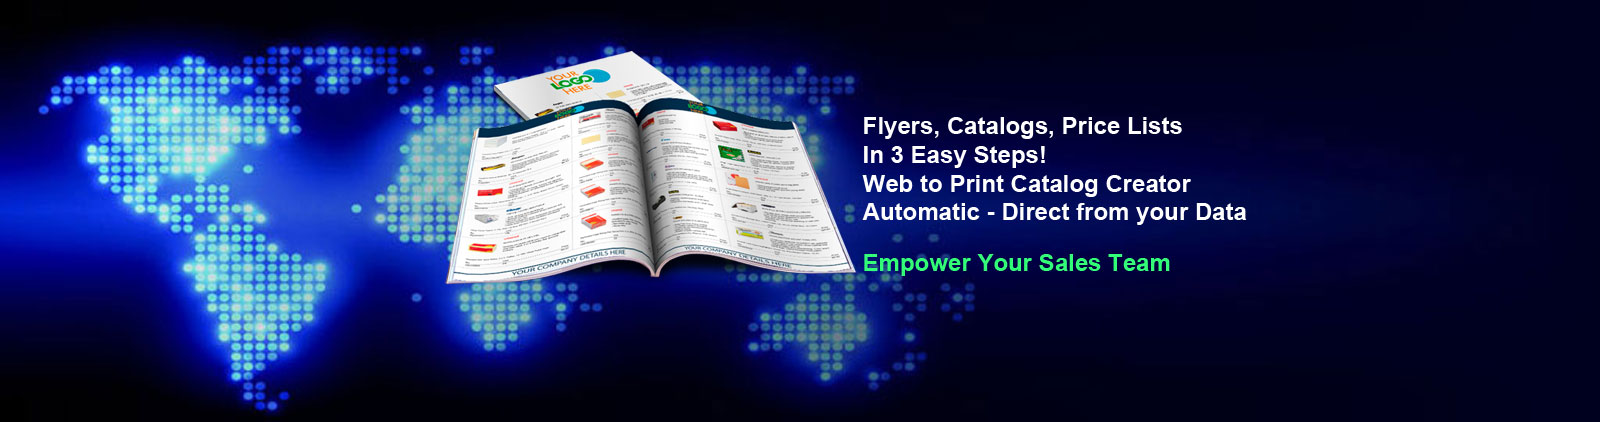 Activepoint - DIY Flyers, Catalogs, Price Lists In 3 Easy Steps with Activepoint's web to Print Catalog Creator